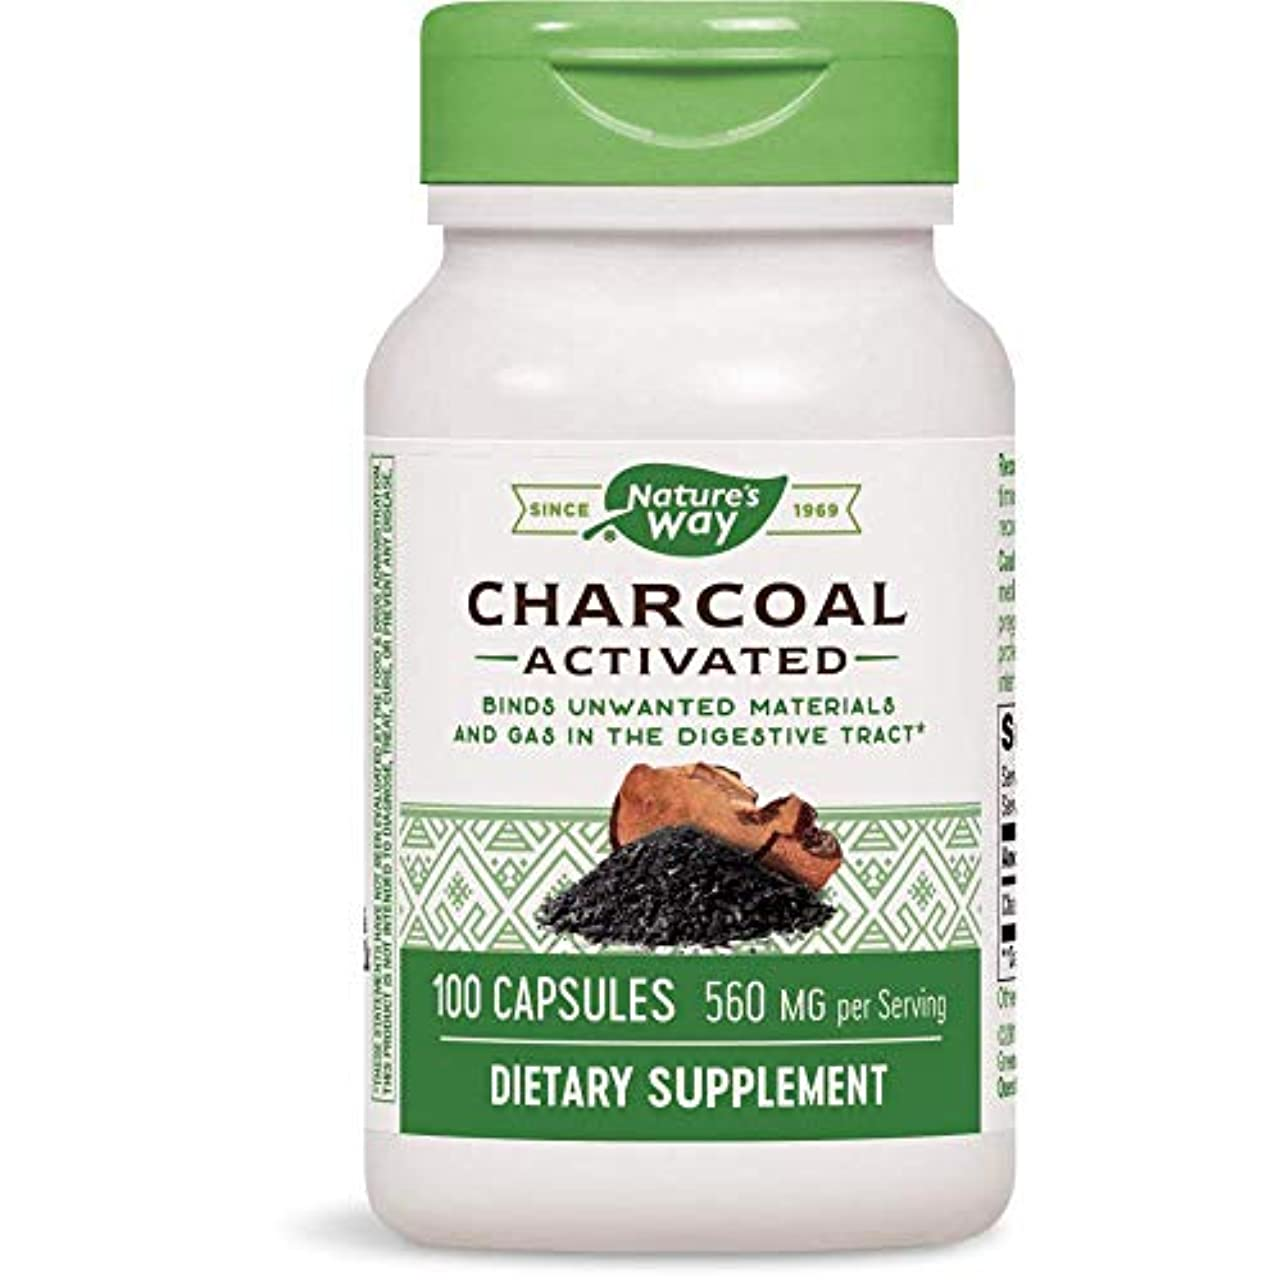 辛な生きる仲良し海外直送品Nature's Way Charcoal, Activated, 100 Caps 260 MG(Pack of 3)